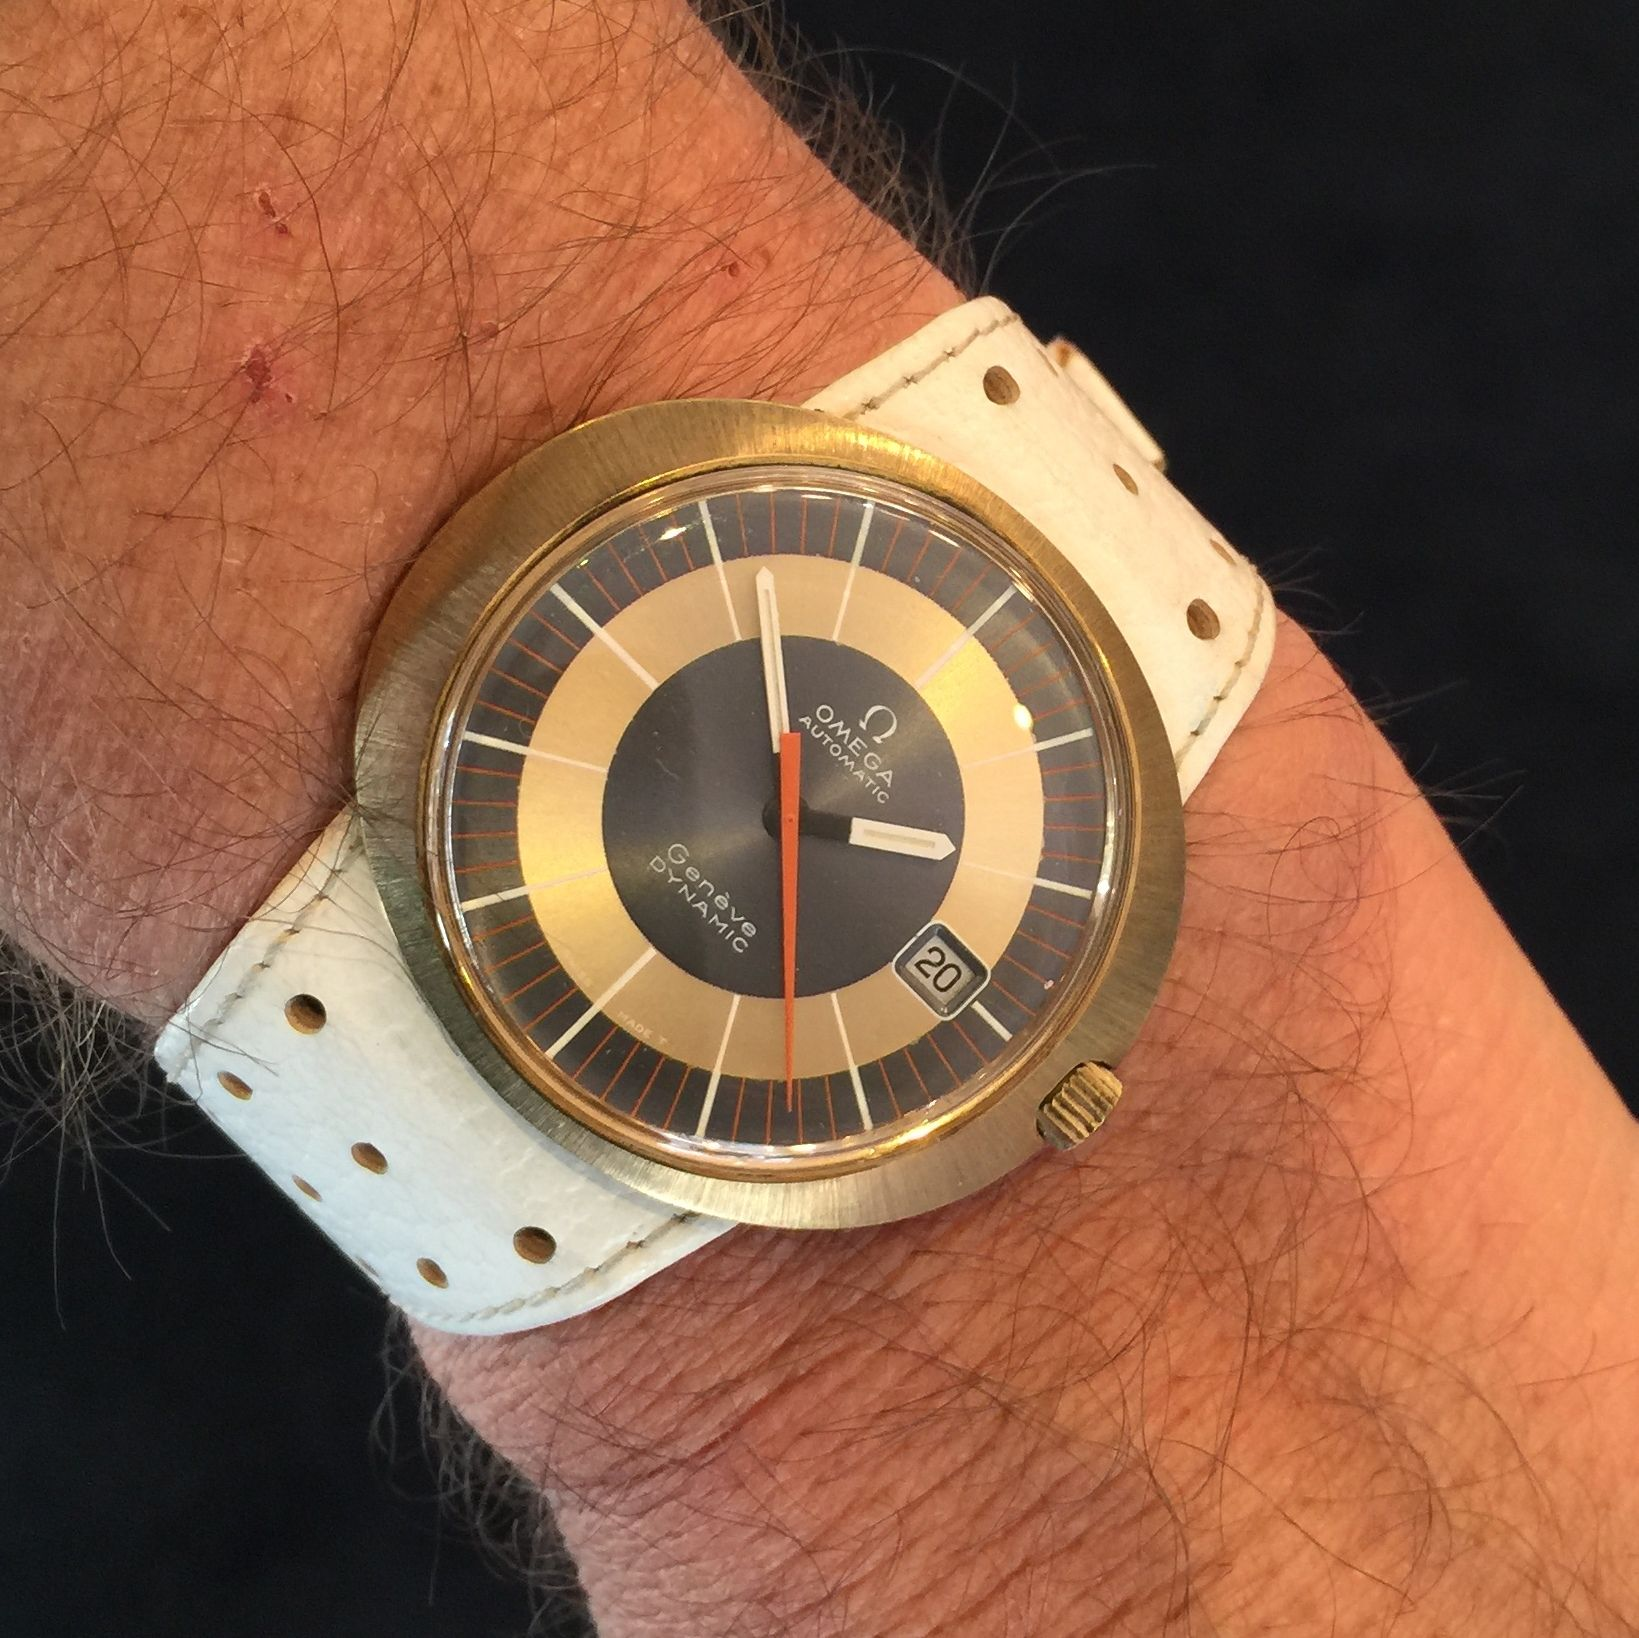 NEW OLD STOCK omega dynamic with original strap and buckle